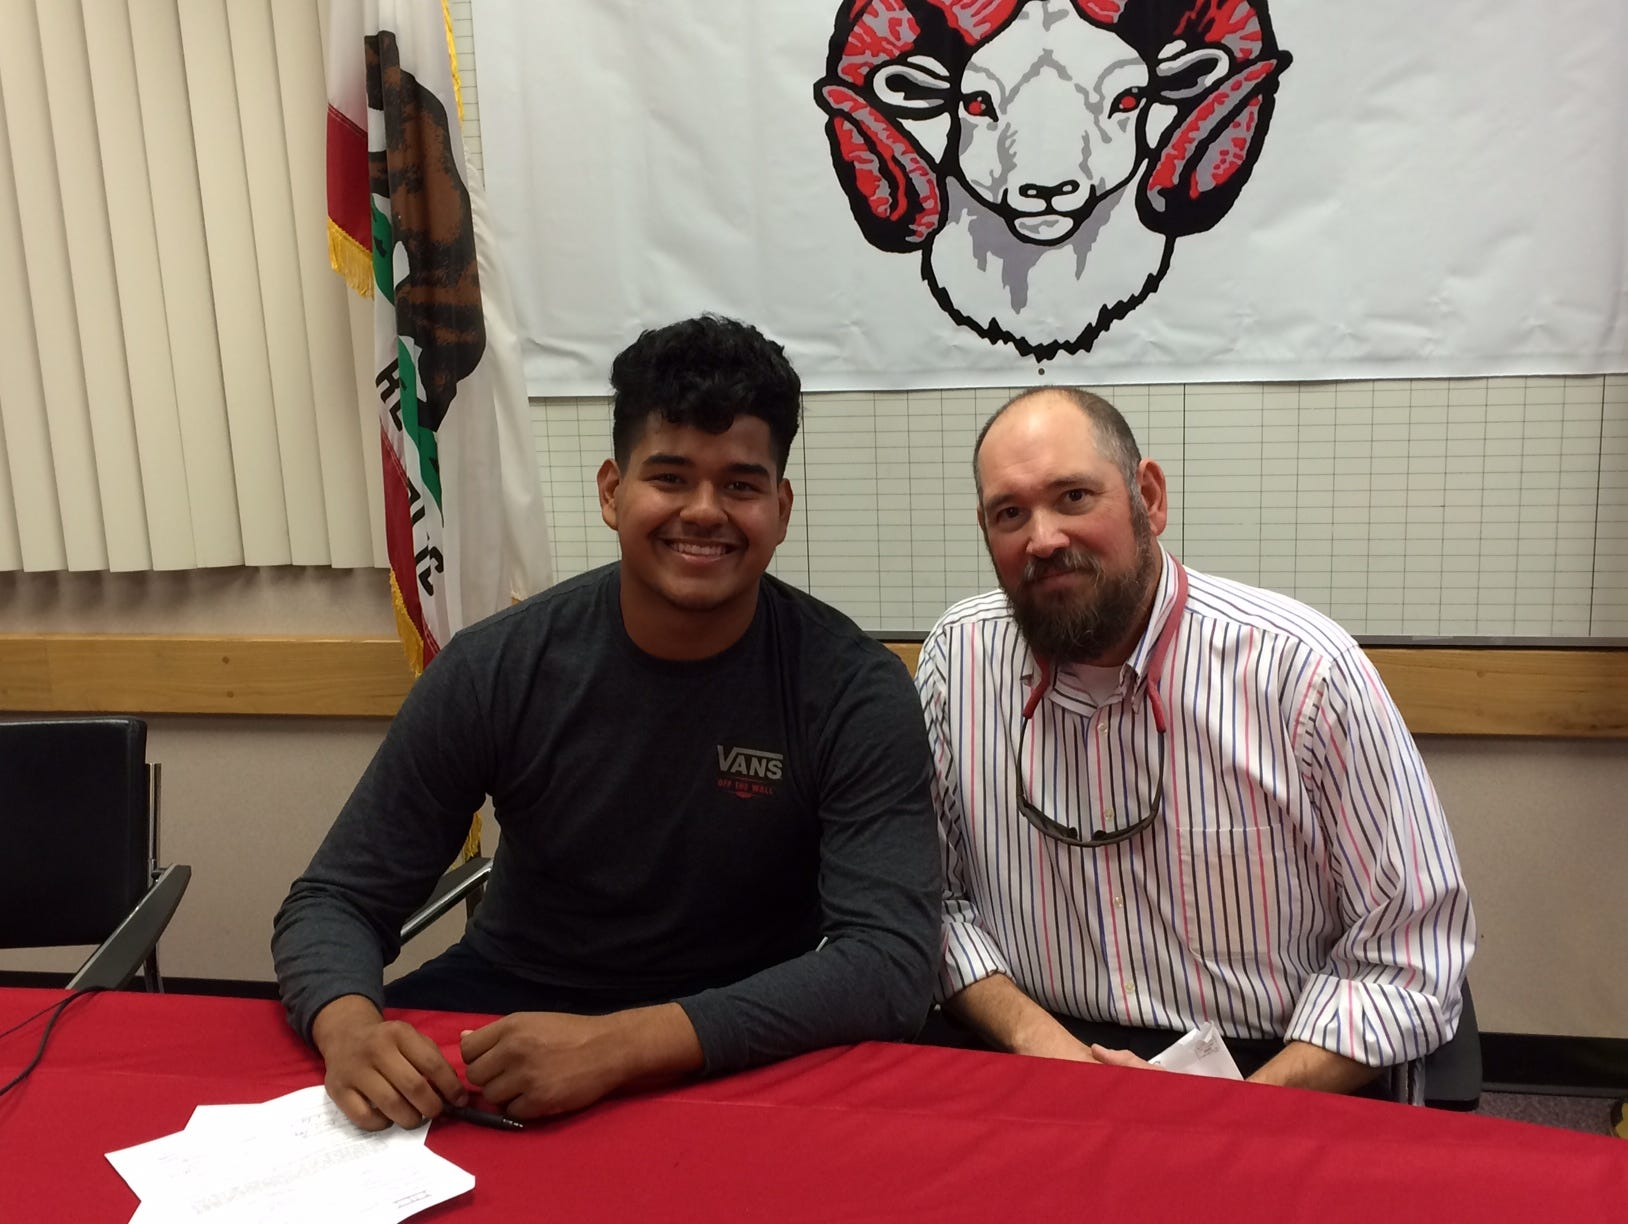 On Thursday, Desert Mirage senior Froilan Rodriguez, with coach Jeff Tebelak, signed his national letter of intent to play football next year at Western New Mexico.